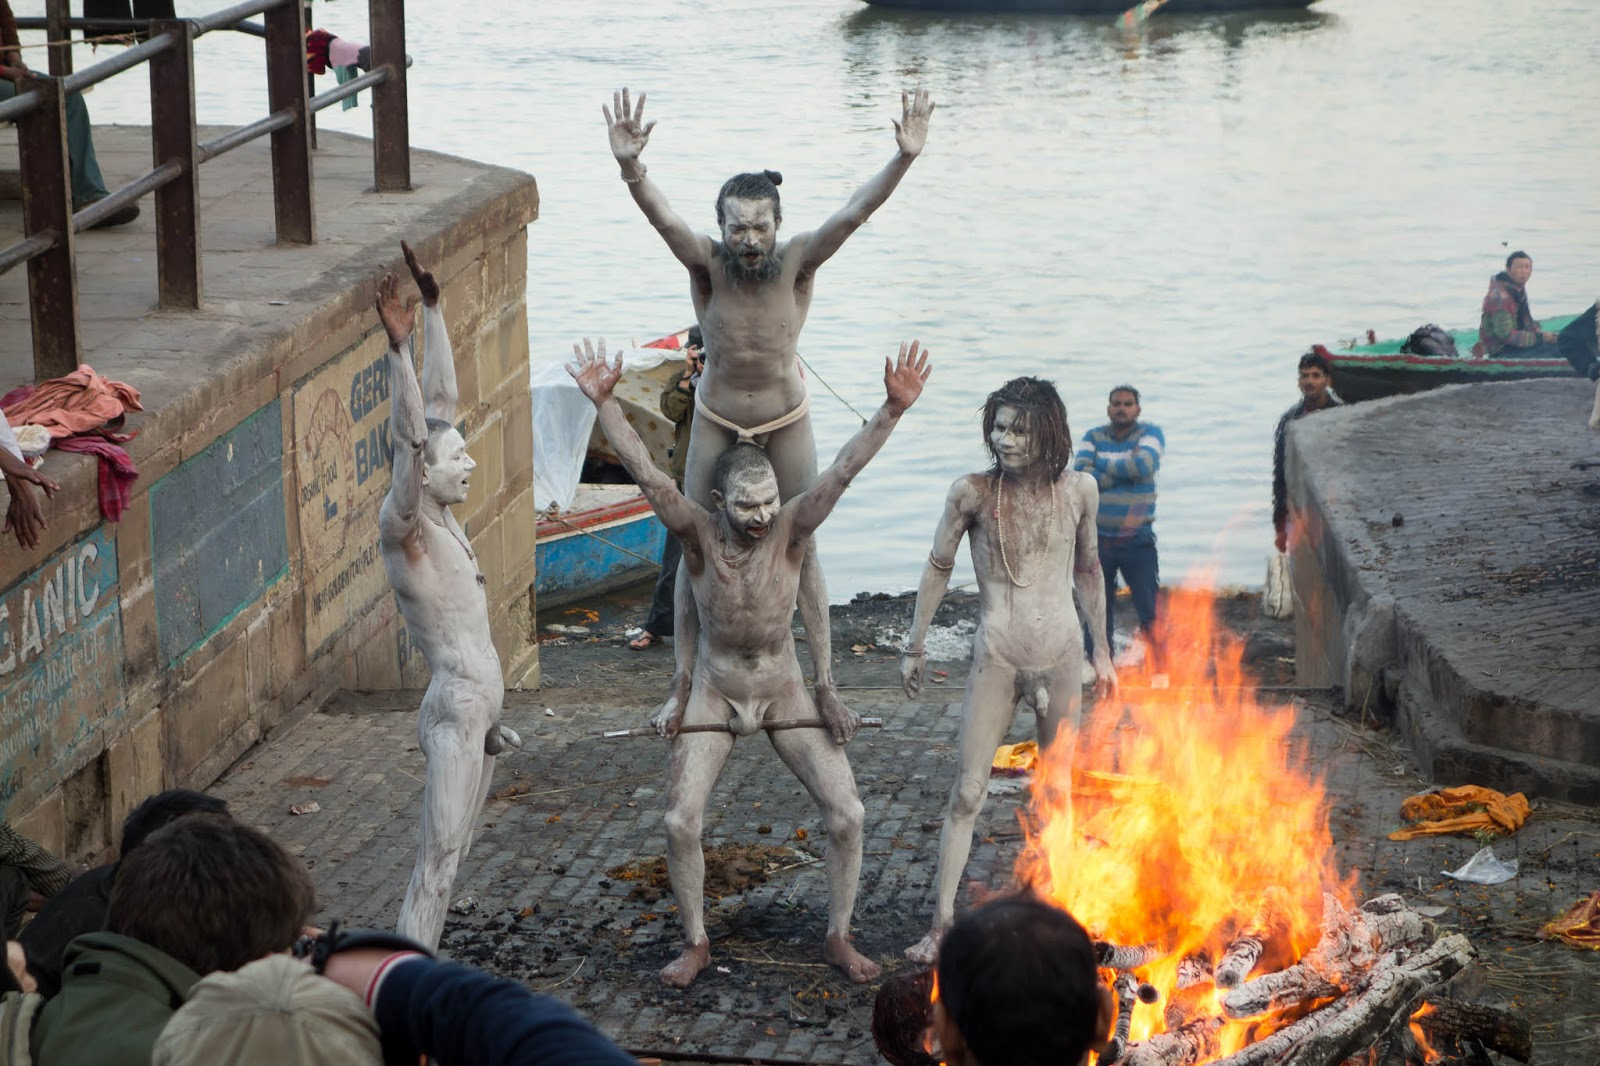 Hindu ascetics know how to liven up a funeral